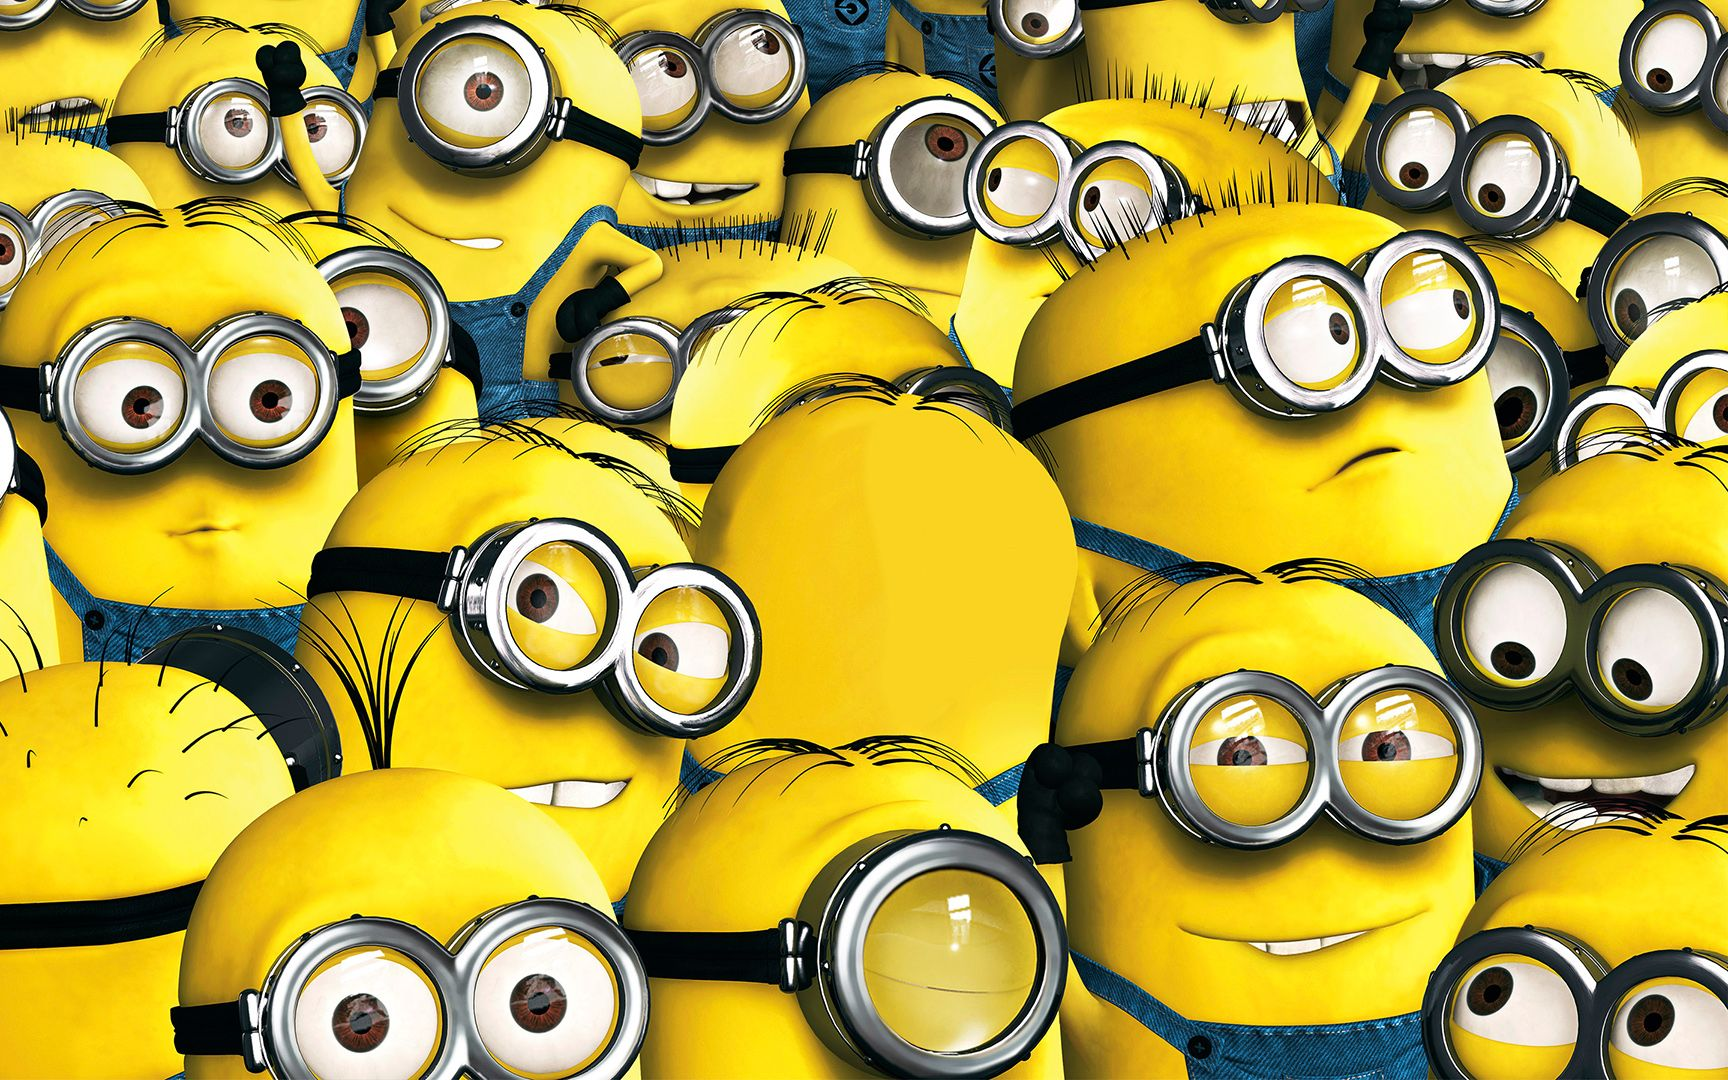 Minions Movie Hd Wallpapers Hd Wallpapers Backgrounds Of Your Choice Minions Wallpaper Cute Minions Wallpaper Minion Wallpaper Hd